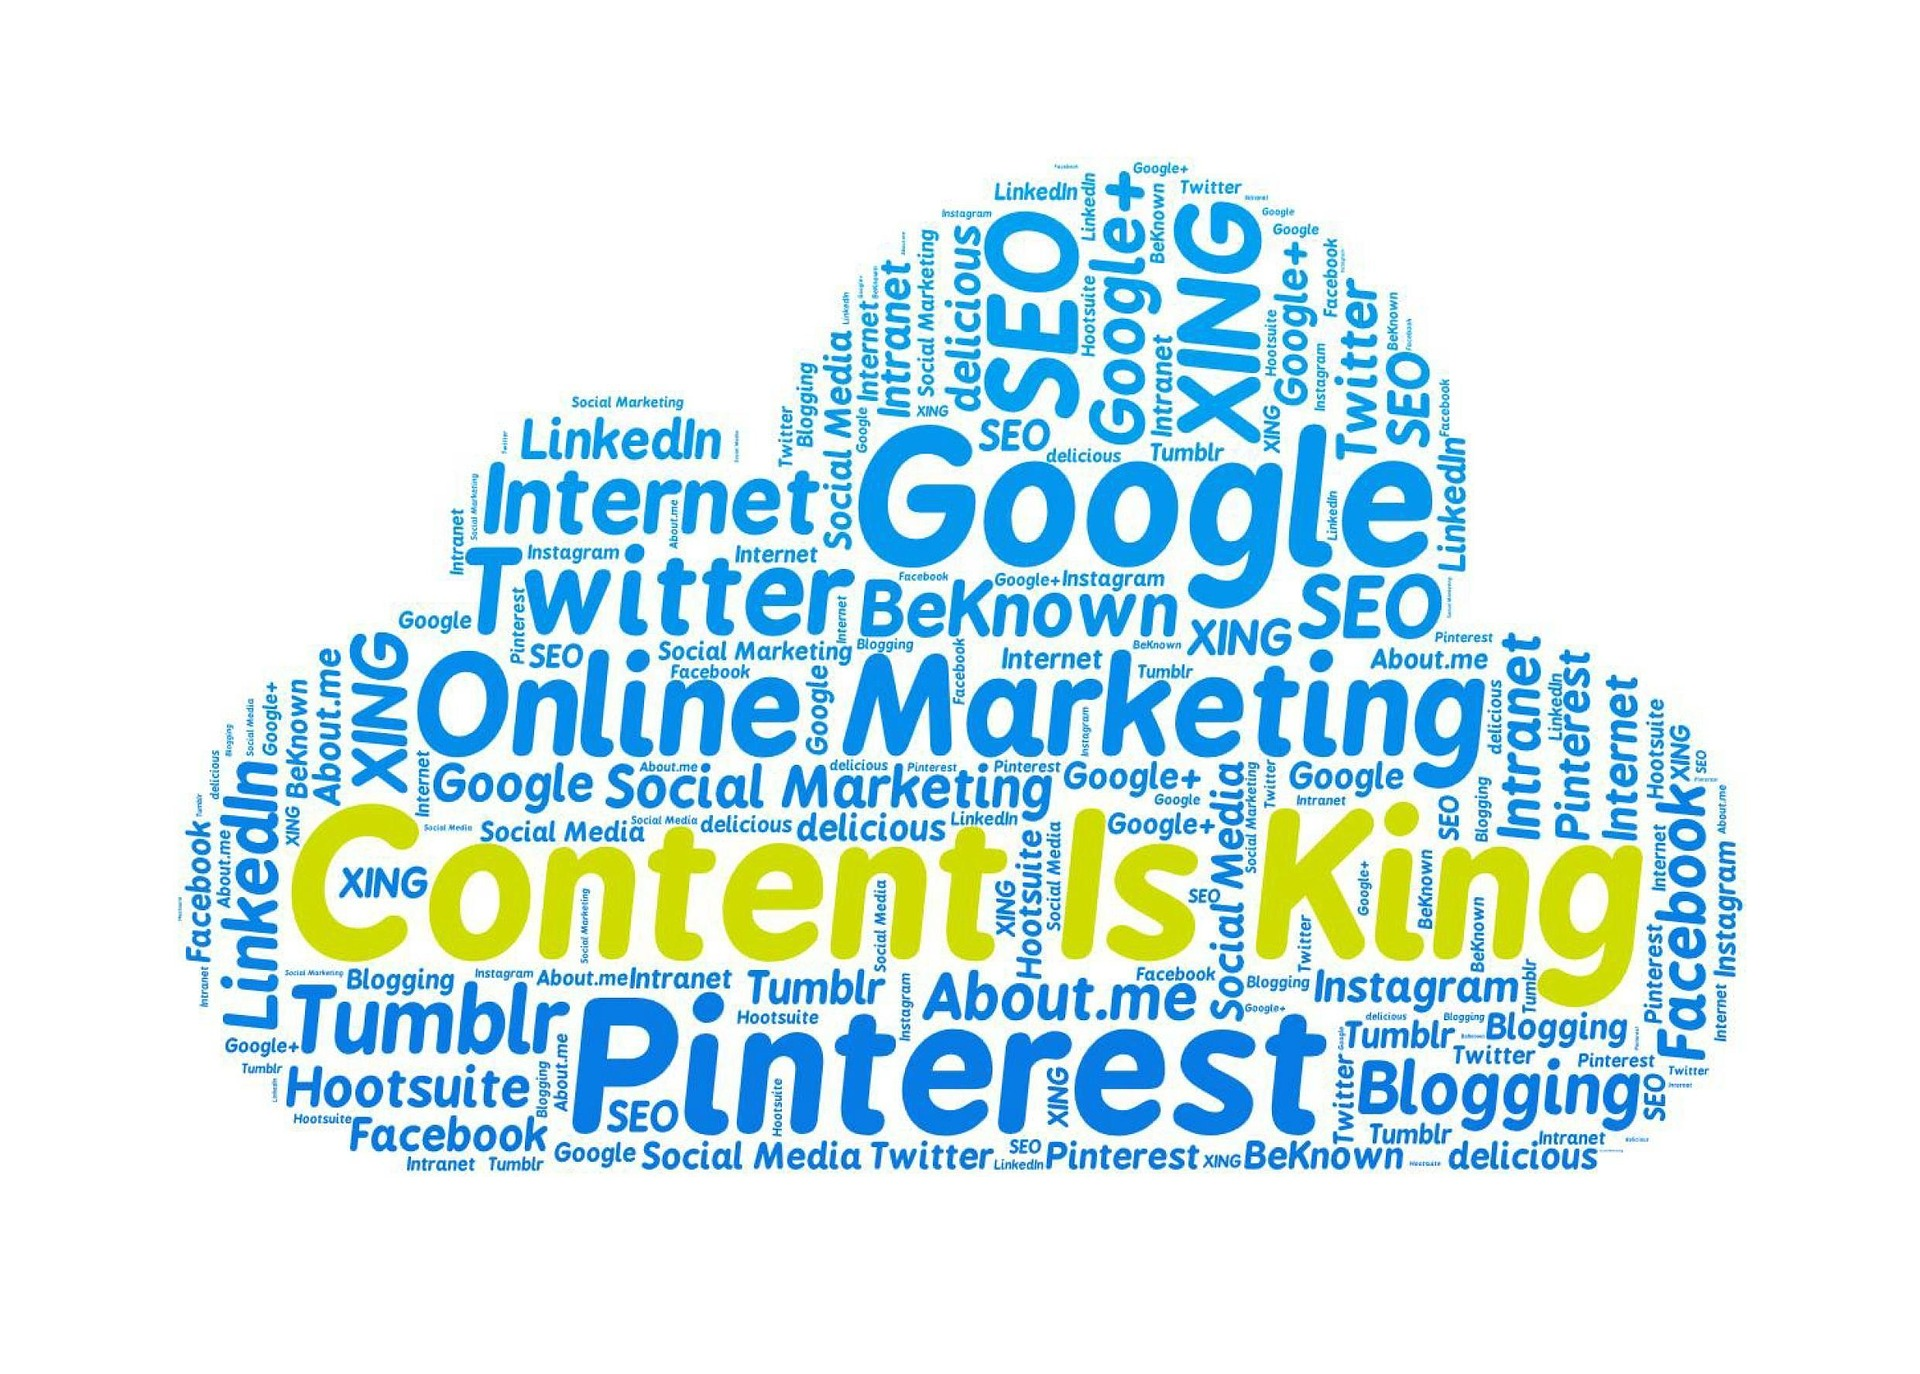 10 Reasons Why Content Marketing is Important to Your Business